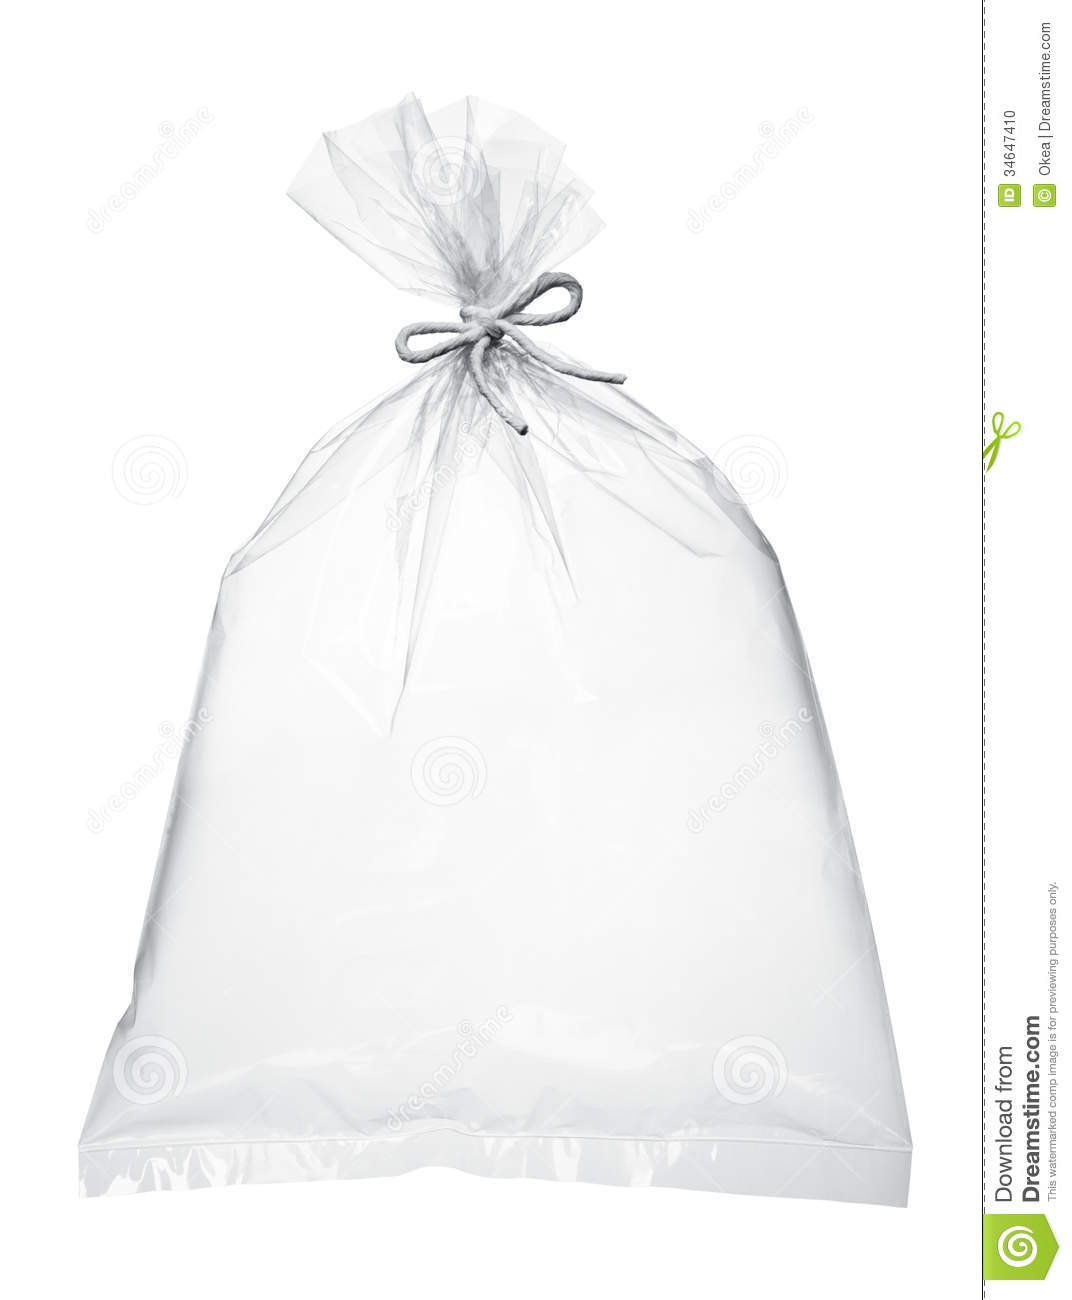 [Image: air-plastic-bag-transparent-full-isolate...647410.jpg]